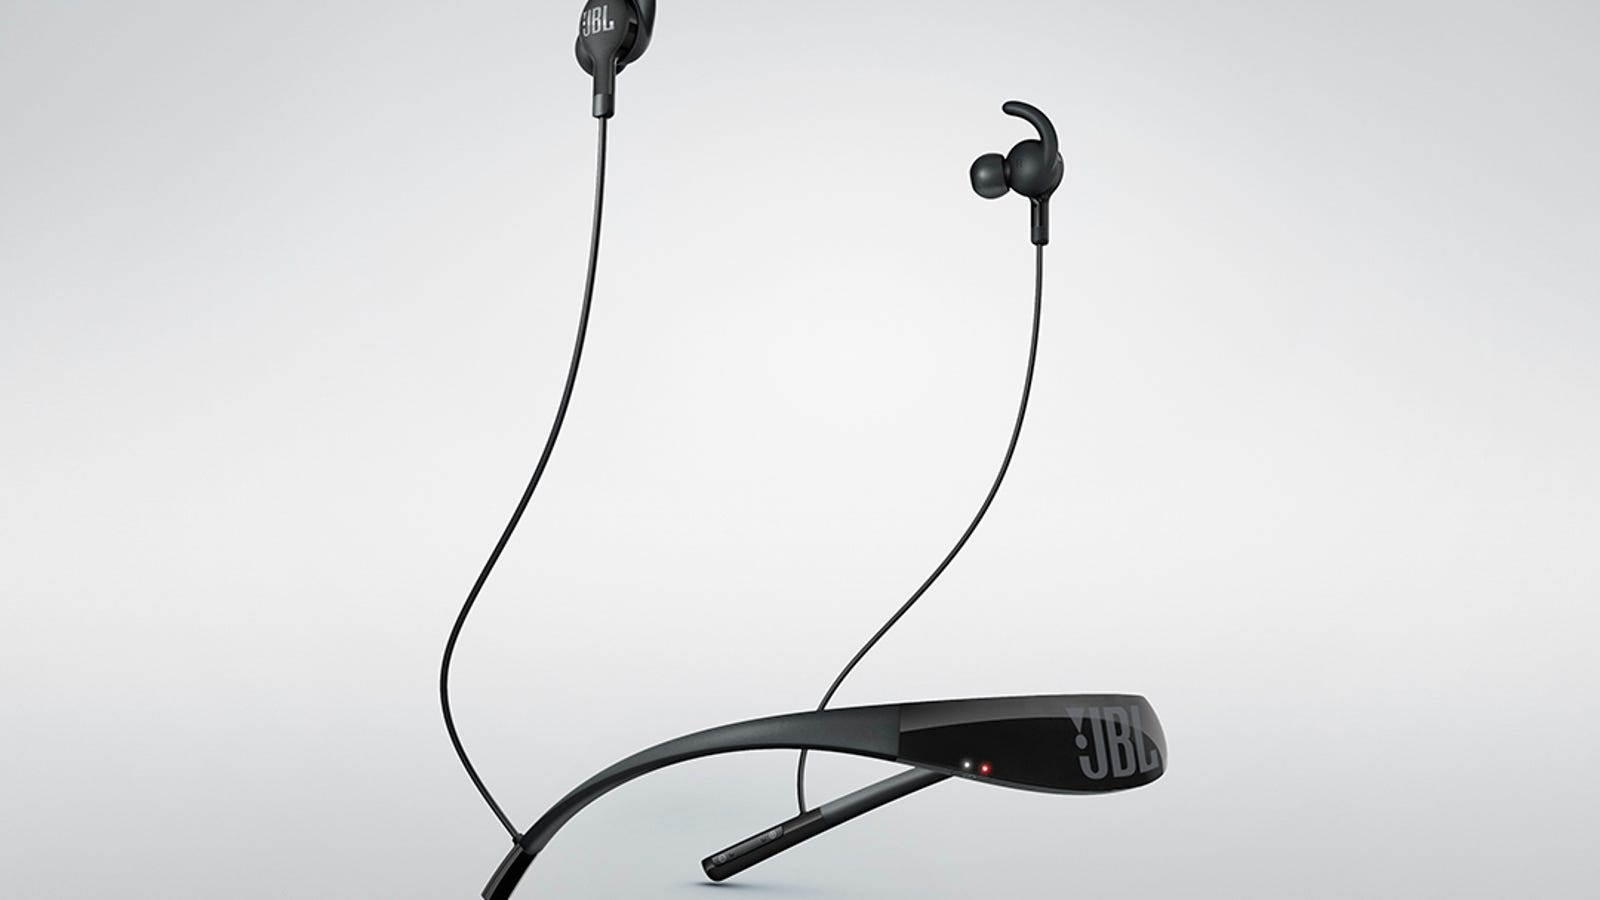 panasonic ergofit rp-hje120 earbuds - You Won't Hear the Haters With These Noise-Cancelling Earbuds